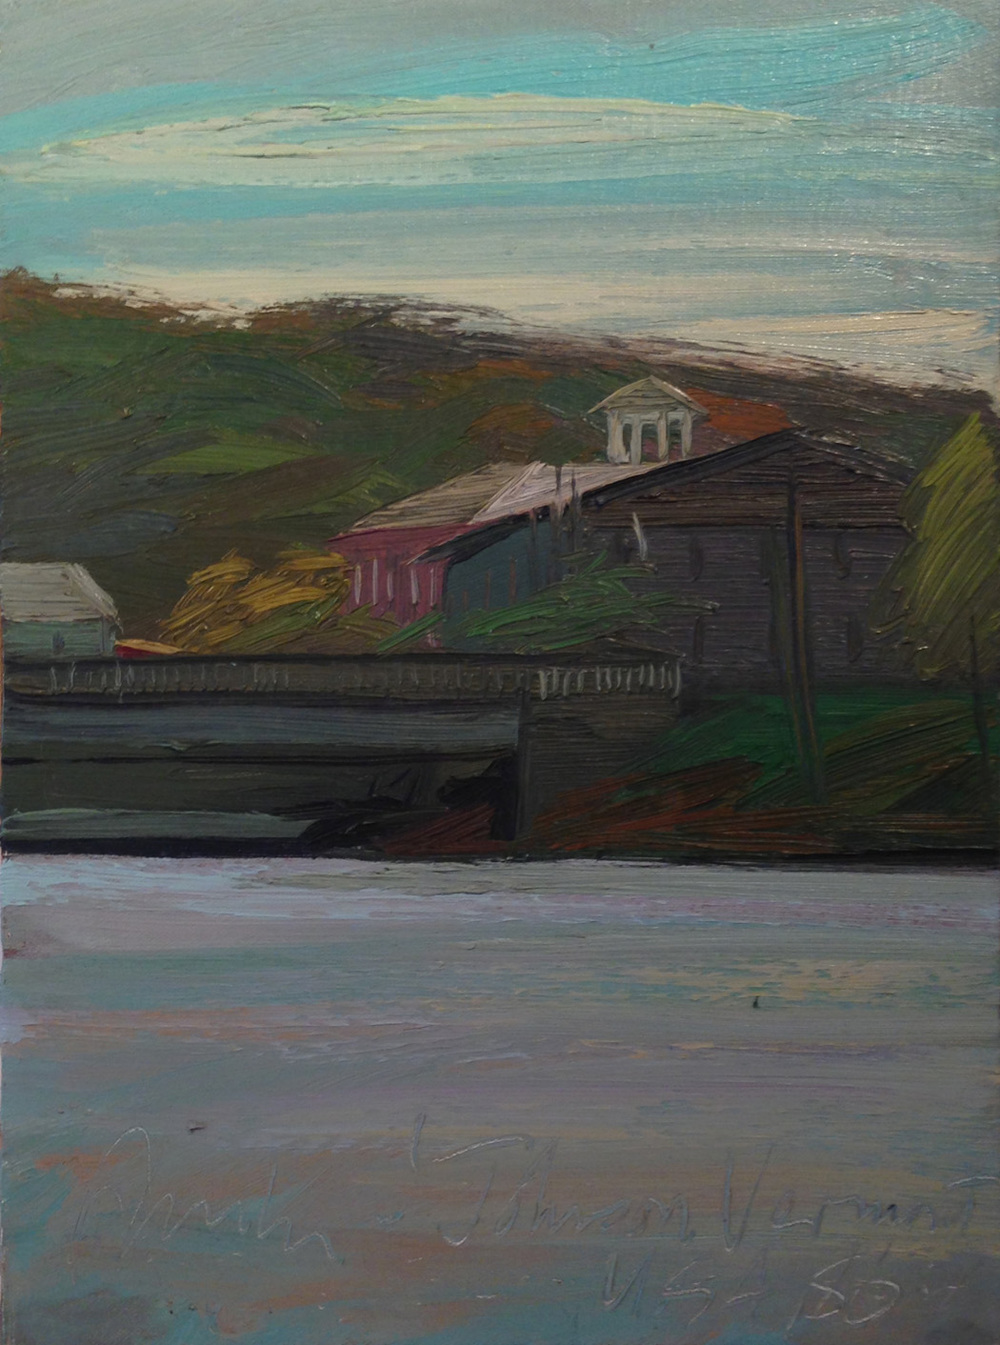 Johnson, Vermont, USA,  1986 oil on canvas, 14 x 10 1/2 inches